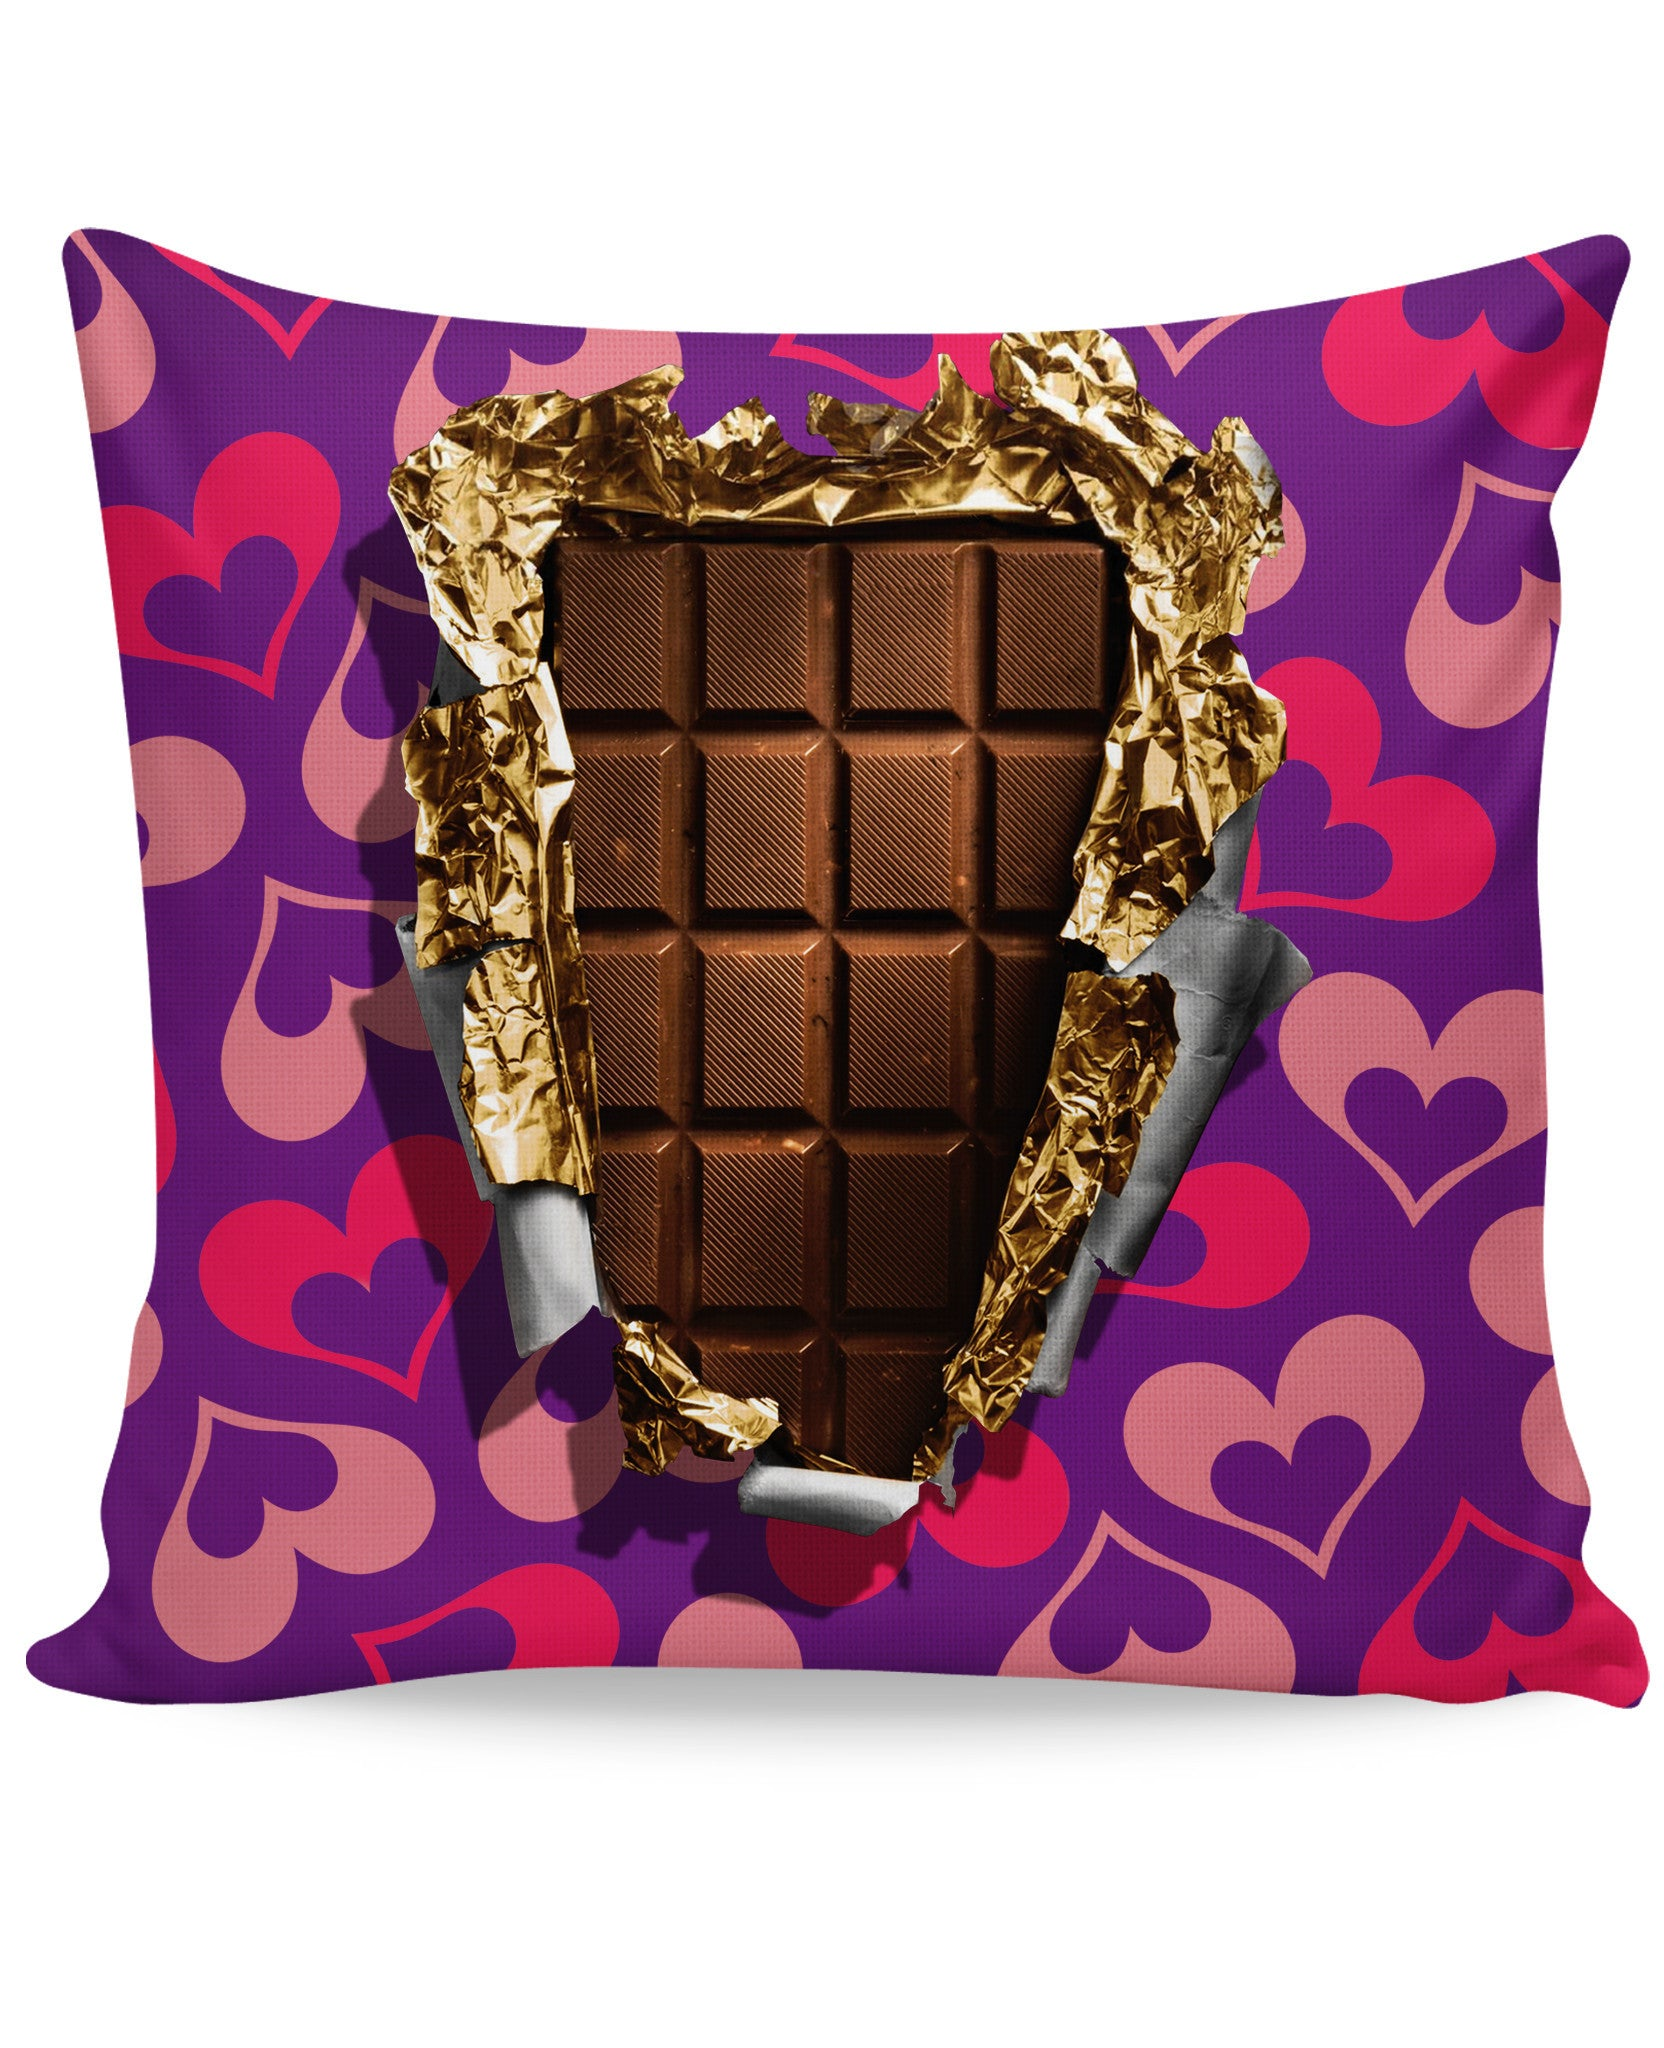 Chocolate Bar Couch Pillow